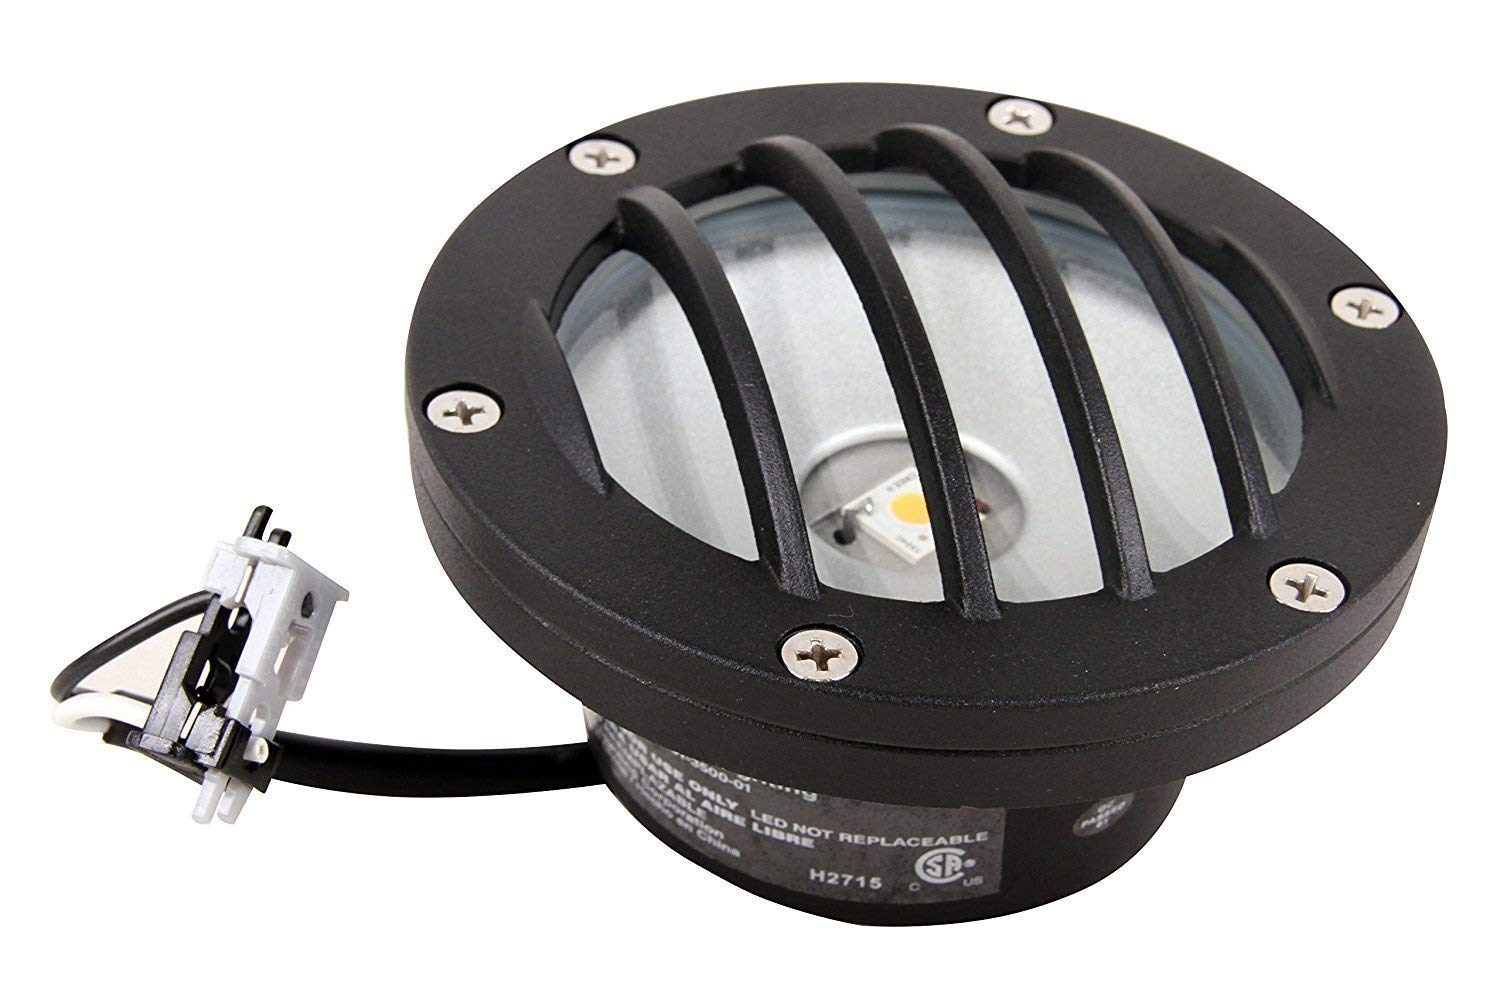 7 Watt 3 Pack of Malibu 8301-2402-03 Half Brick Deck Step Light w// 2 Lenses ea Black BY MALIBU DISTRIBUTION